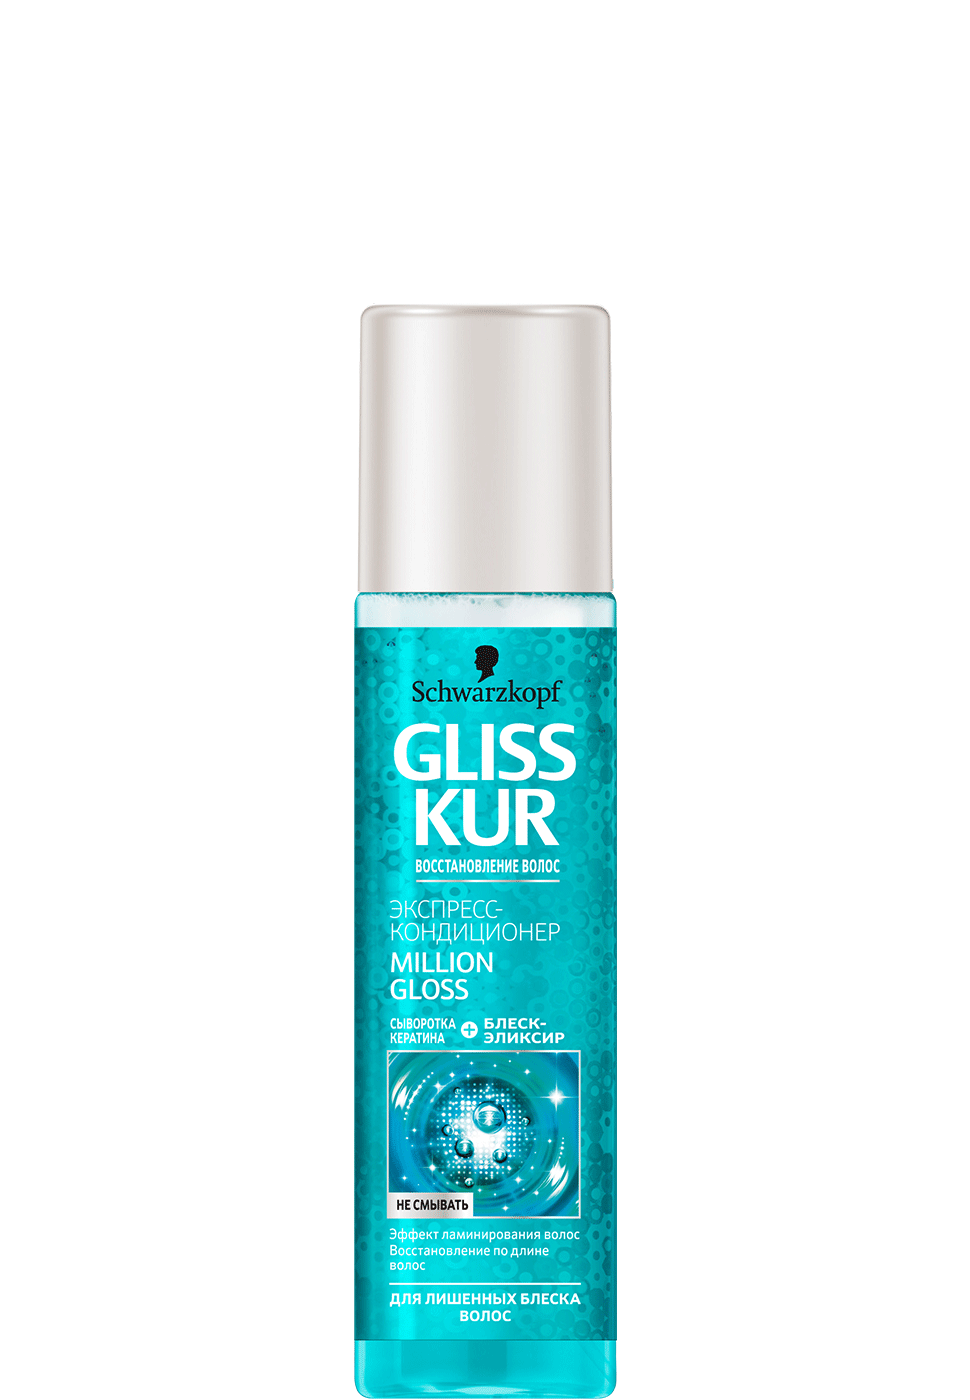 Экспресс-кондиционер Gliss Kur Million Gloss